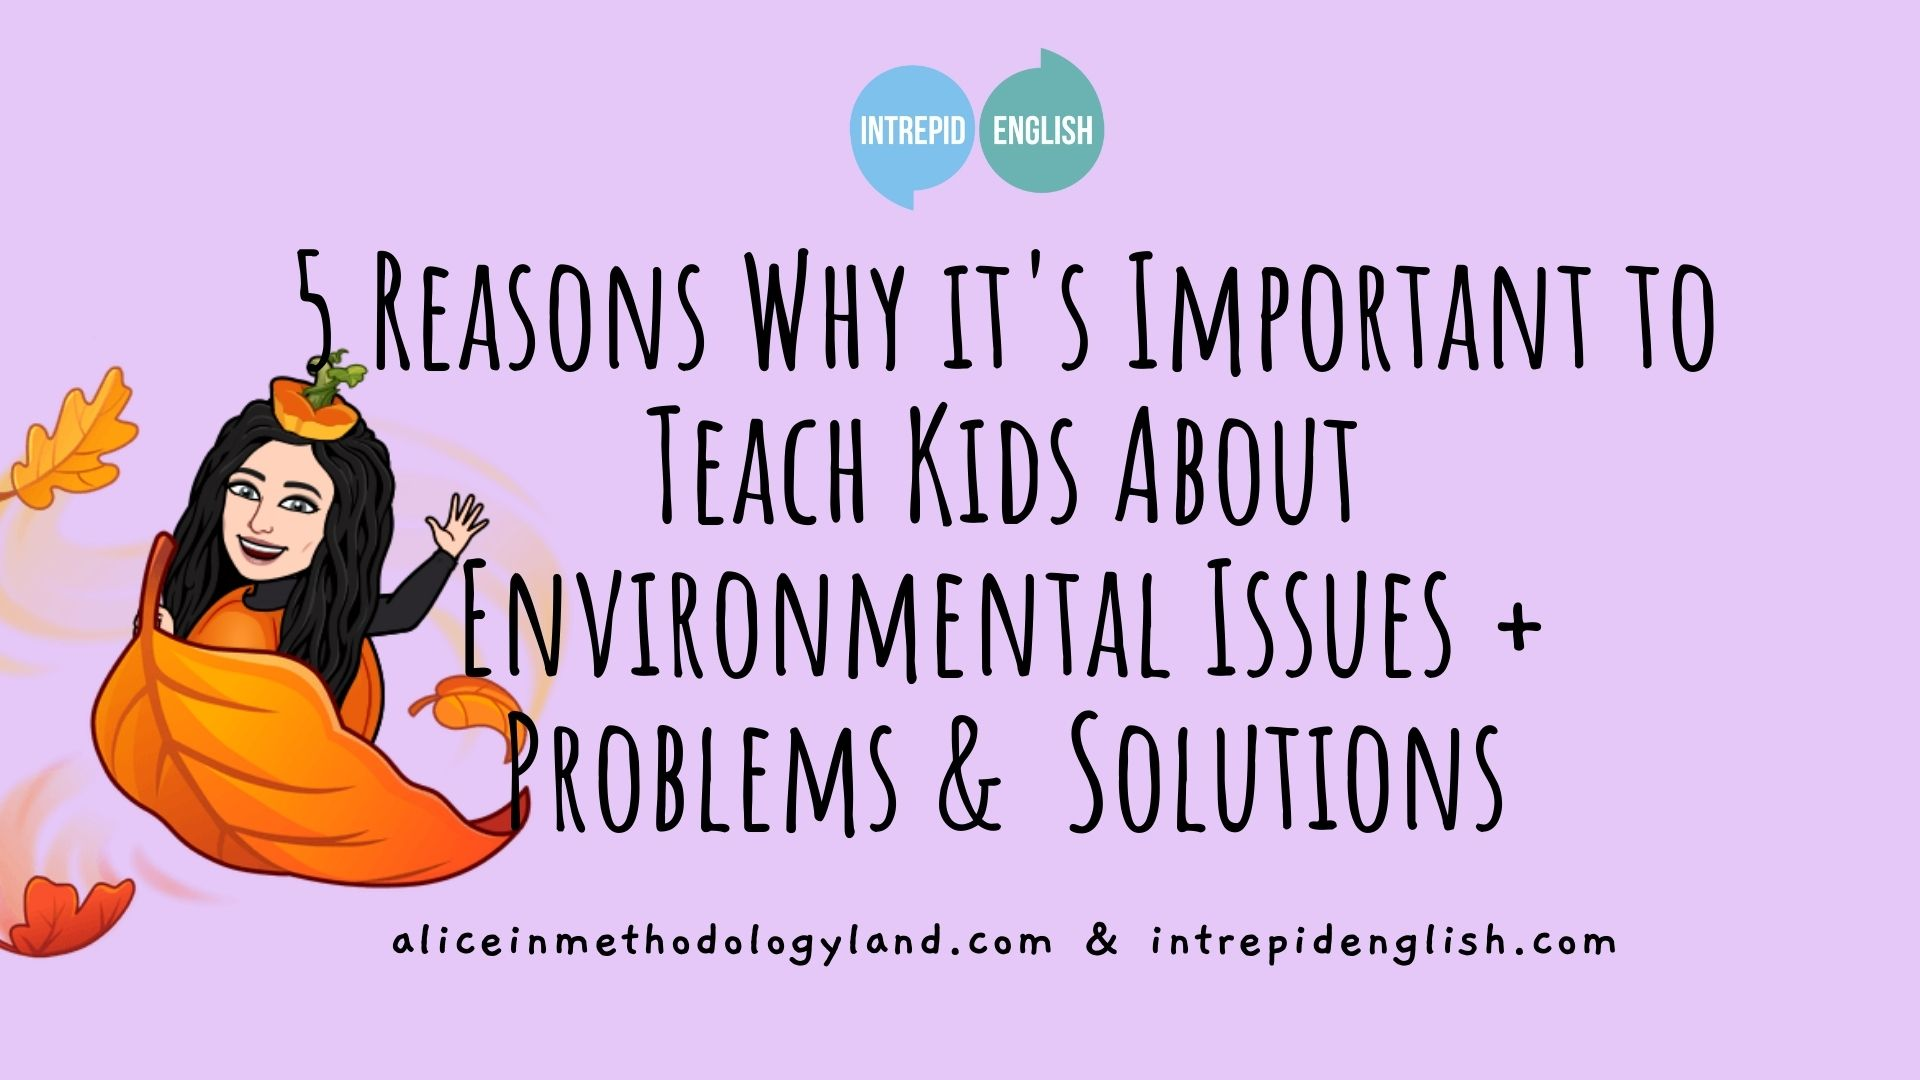 5 Reasons Why it's Important to Teach Kids About Environmental Issues + Problems &  Solutions